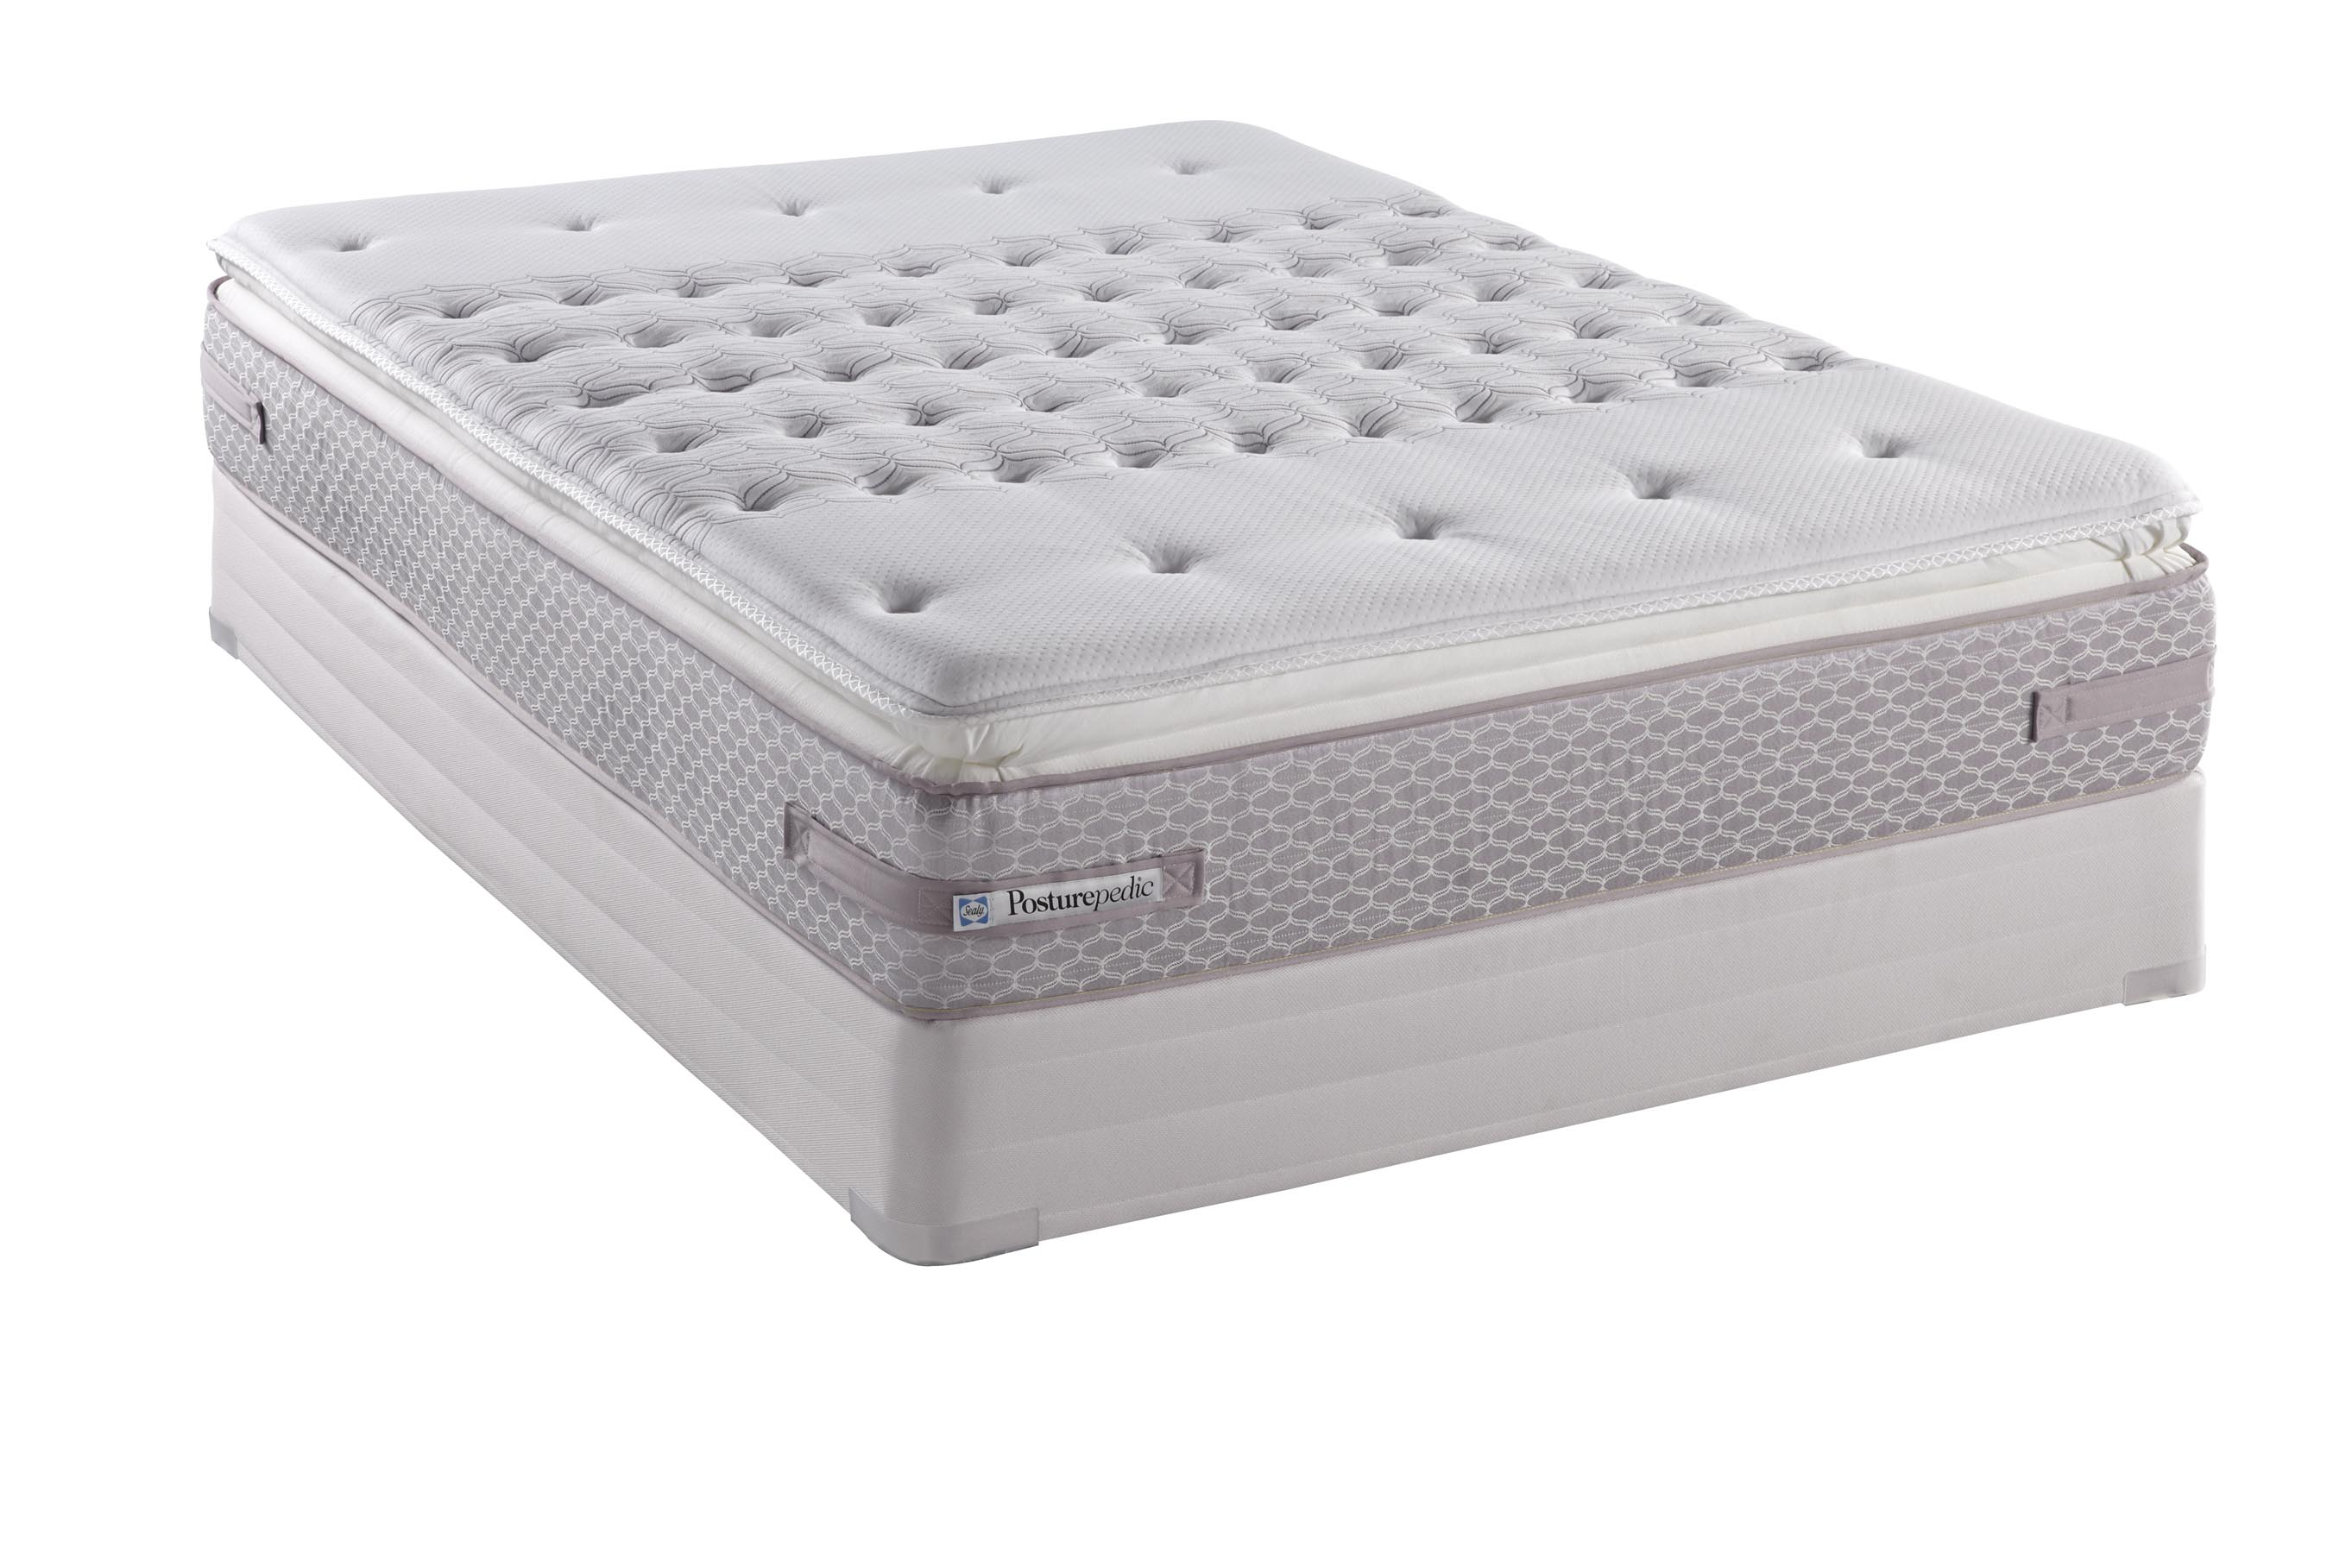 Sealy Posturepedic Titanium DSi™ Firm Pocketed Pillow Top Mattress